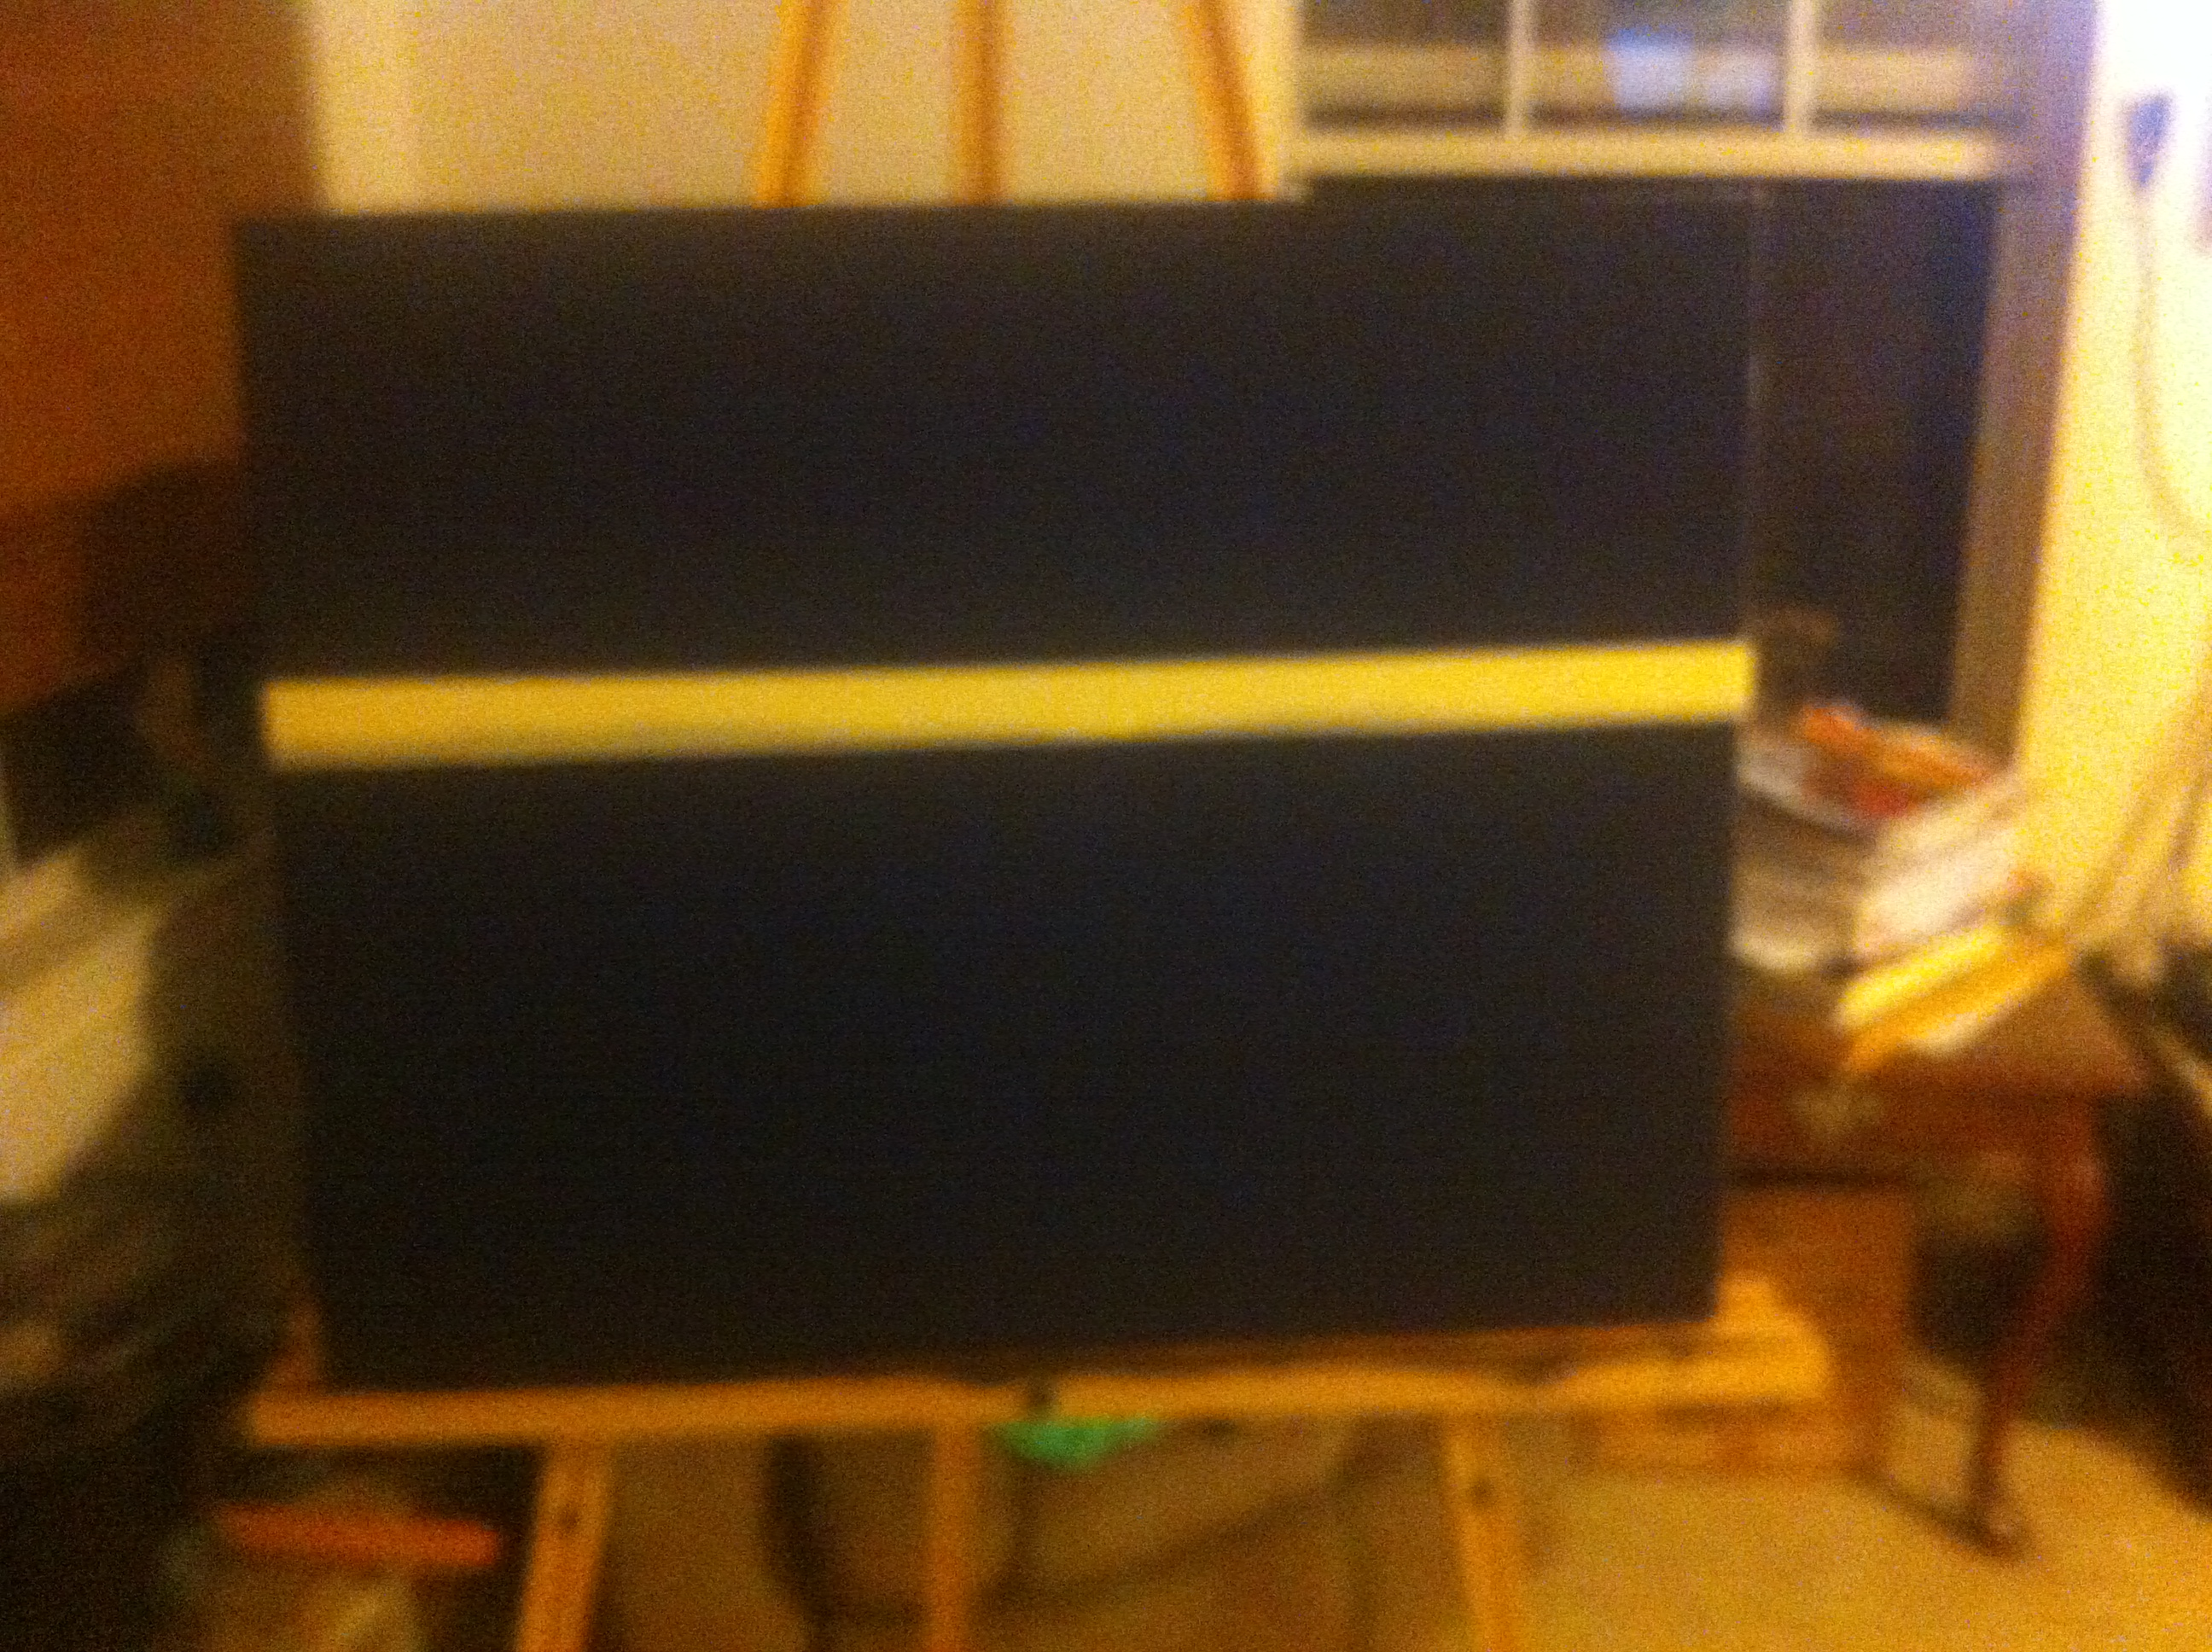 Canvas covered in black gesso